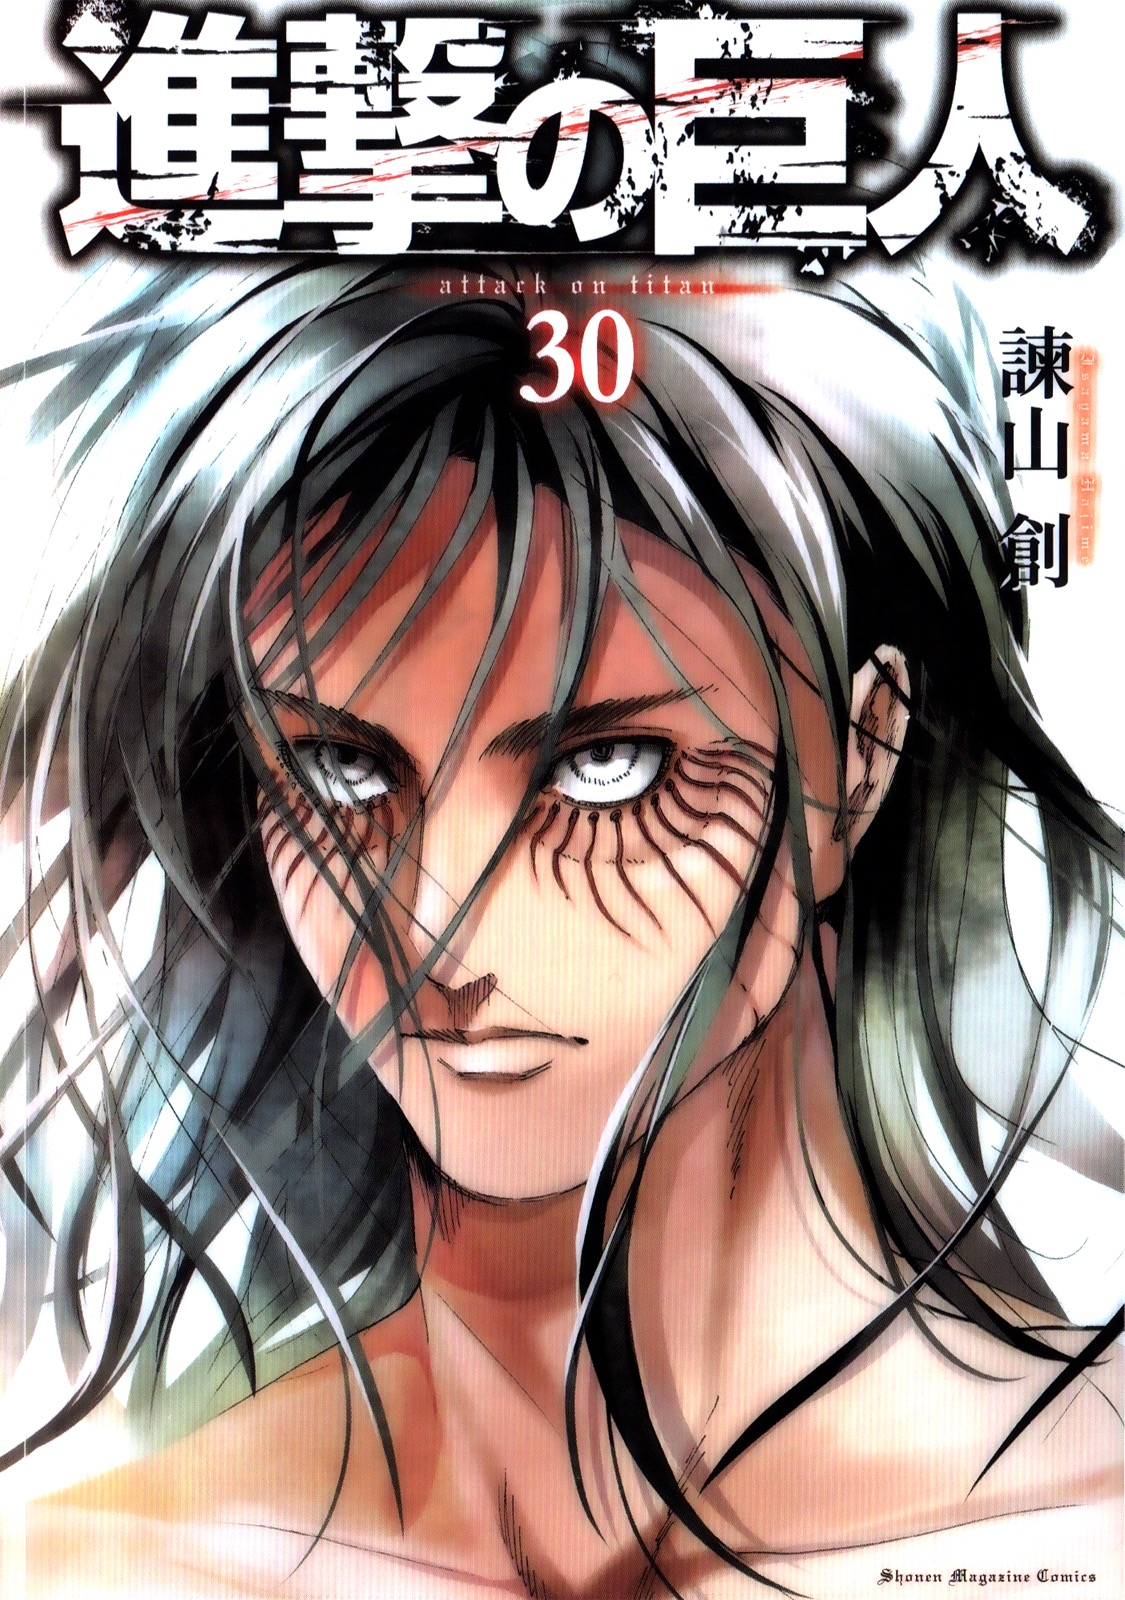 Attack On Titan Wiki On Twitter Attack On Titan Volume 30 Alternative Cover It is set in a world where humanity lives inside cities surrounded by three enormous walls that protect them from. attack on titan volume 30